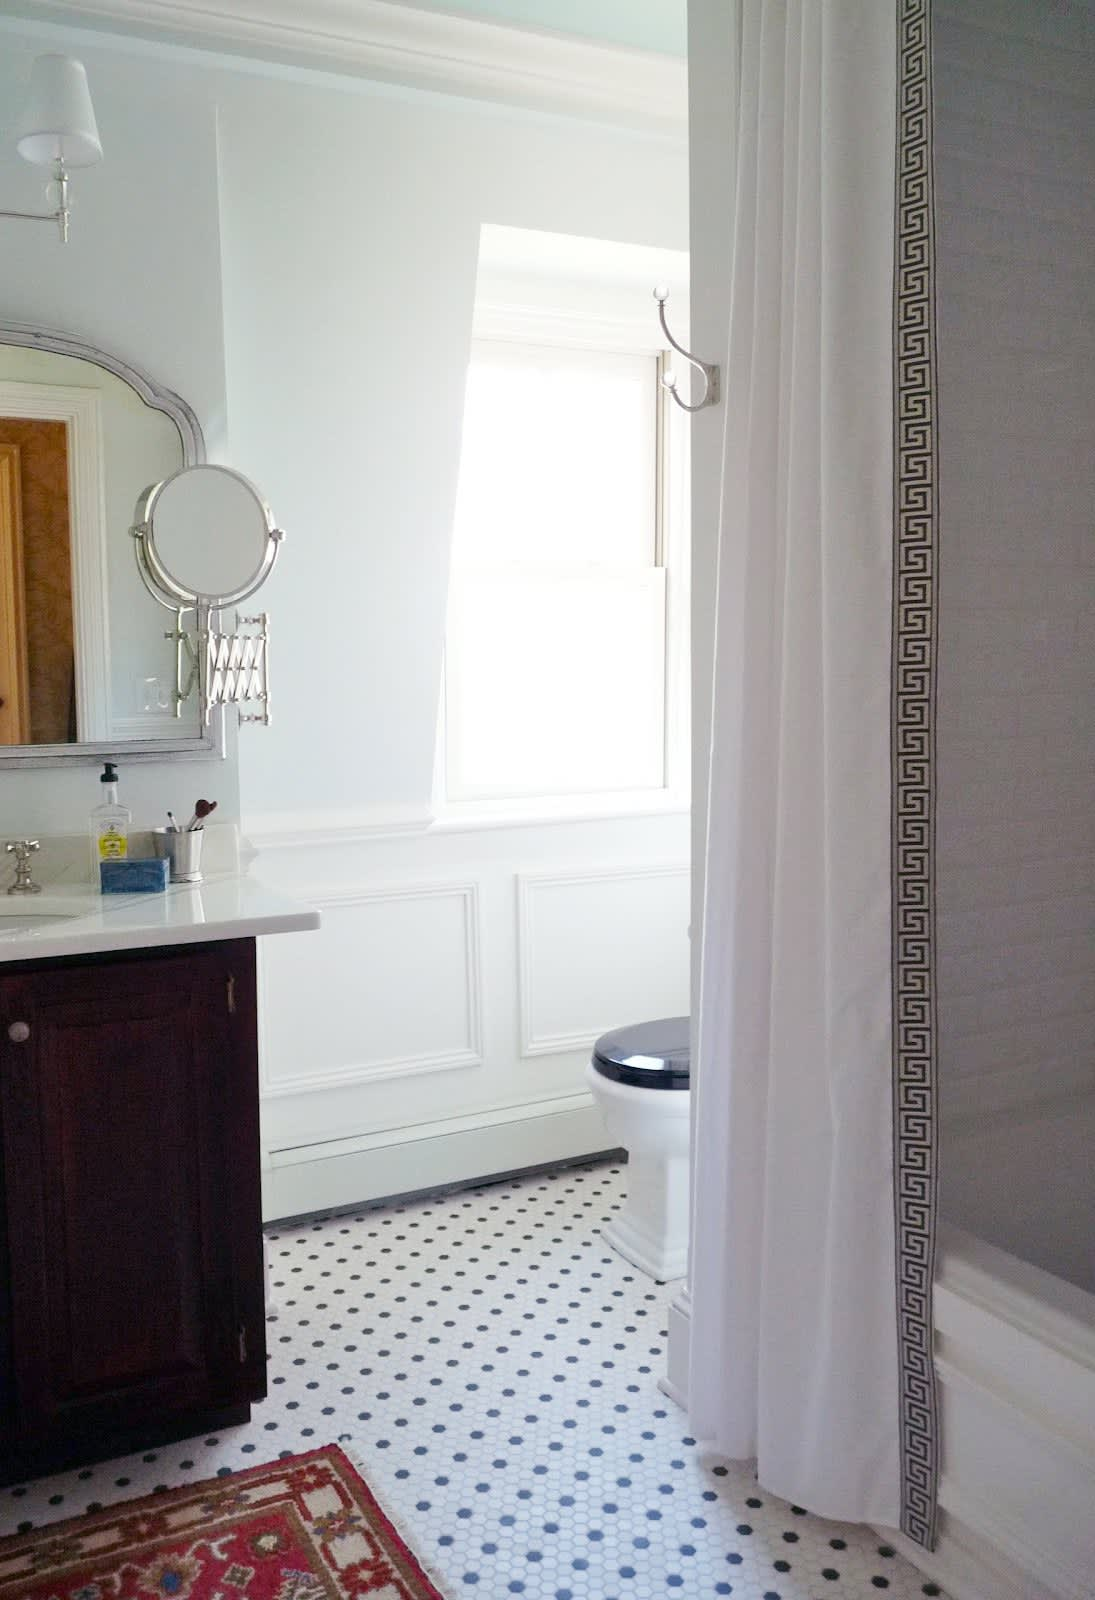 8 Small (But Impactful) Bathroom Upgrades You Can Do in a ...